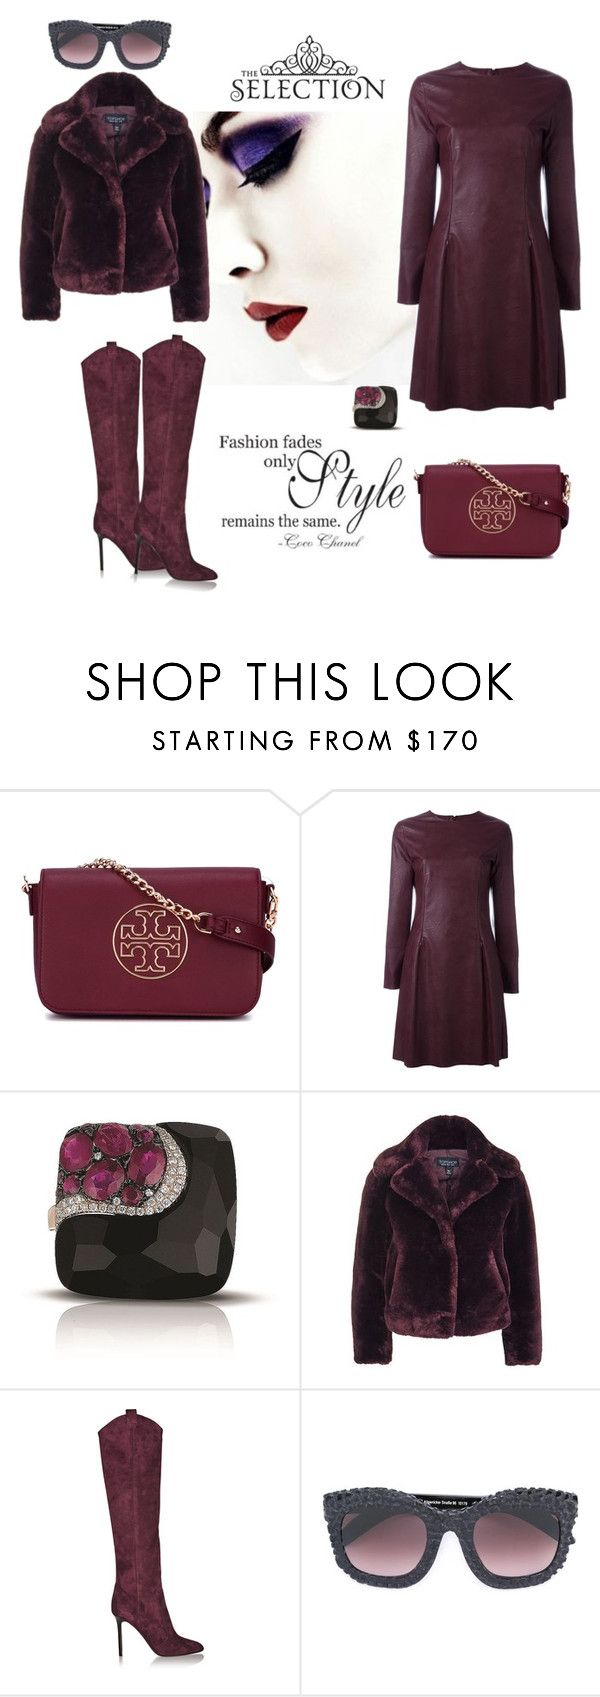 """""""The selection"""" by zabead ❤ liked on Polyvore featuring Tory Burch, MM6 Maison Margiela, Marco Moore, Topshop, Tamara Mellon, Chanel and Kuboraum"""